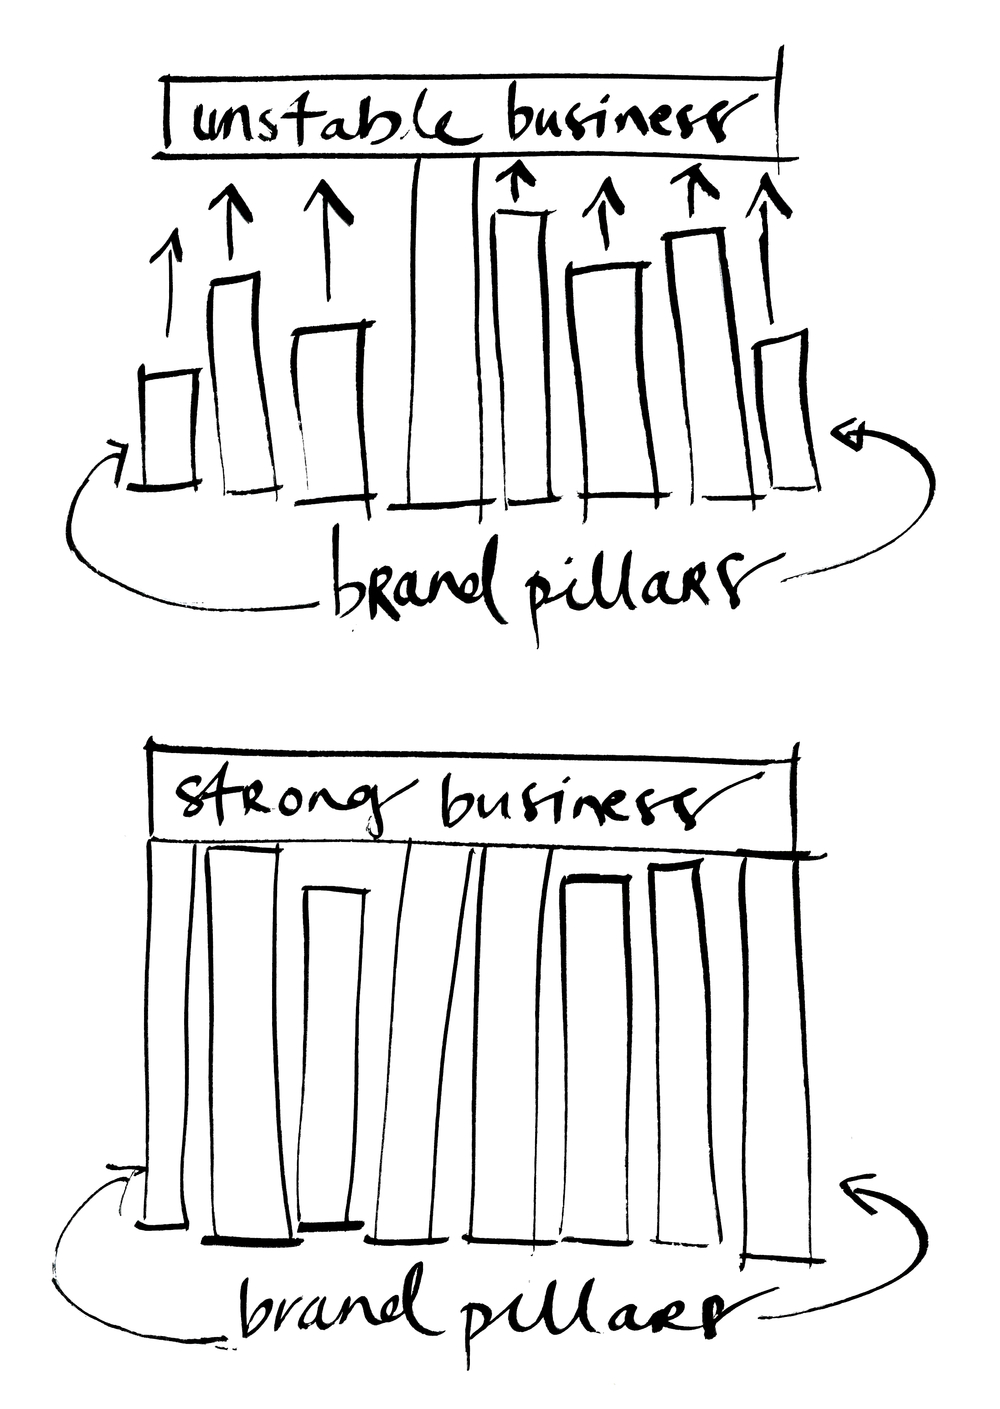 The horizontal block is your business, while the vertical blocks are the different touch points which make up your brand. You really need to invest in all of them, because having just one strong area makes your business vulnerable. When something goes wrong (as it always does in business), having strong pillars means you will have enough support that it won't bring the whole operation to a stand still, or worse, force you to close the doors completely.   (Sorry, this sketch looks like it was done by a 3 year old. I wouldn't say drawing is my forte....)